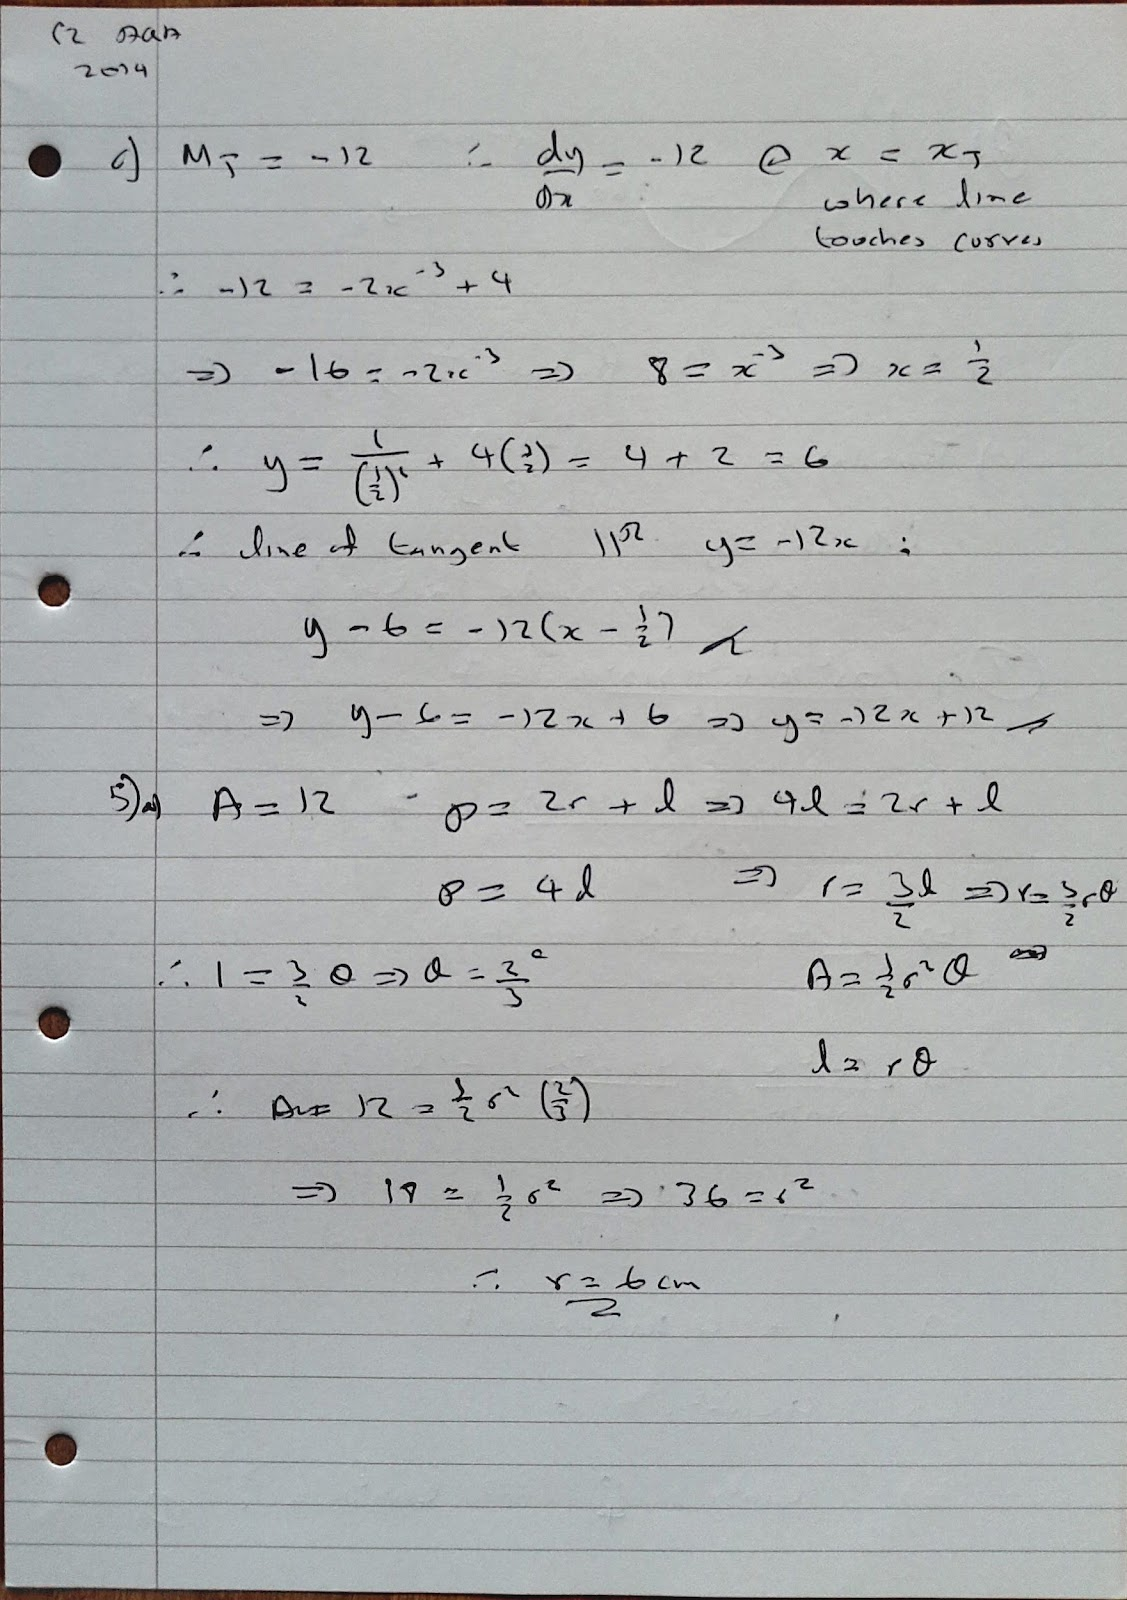 A Level Maths Notes: AQA Core 2 (C2) Summer 2014 Exam